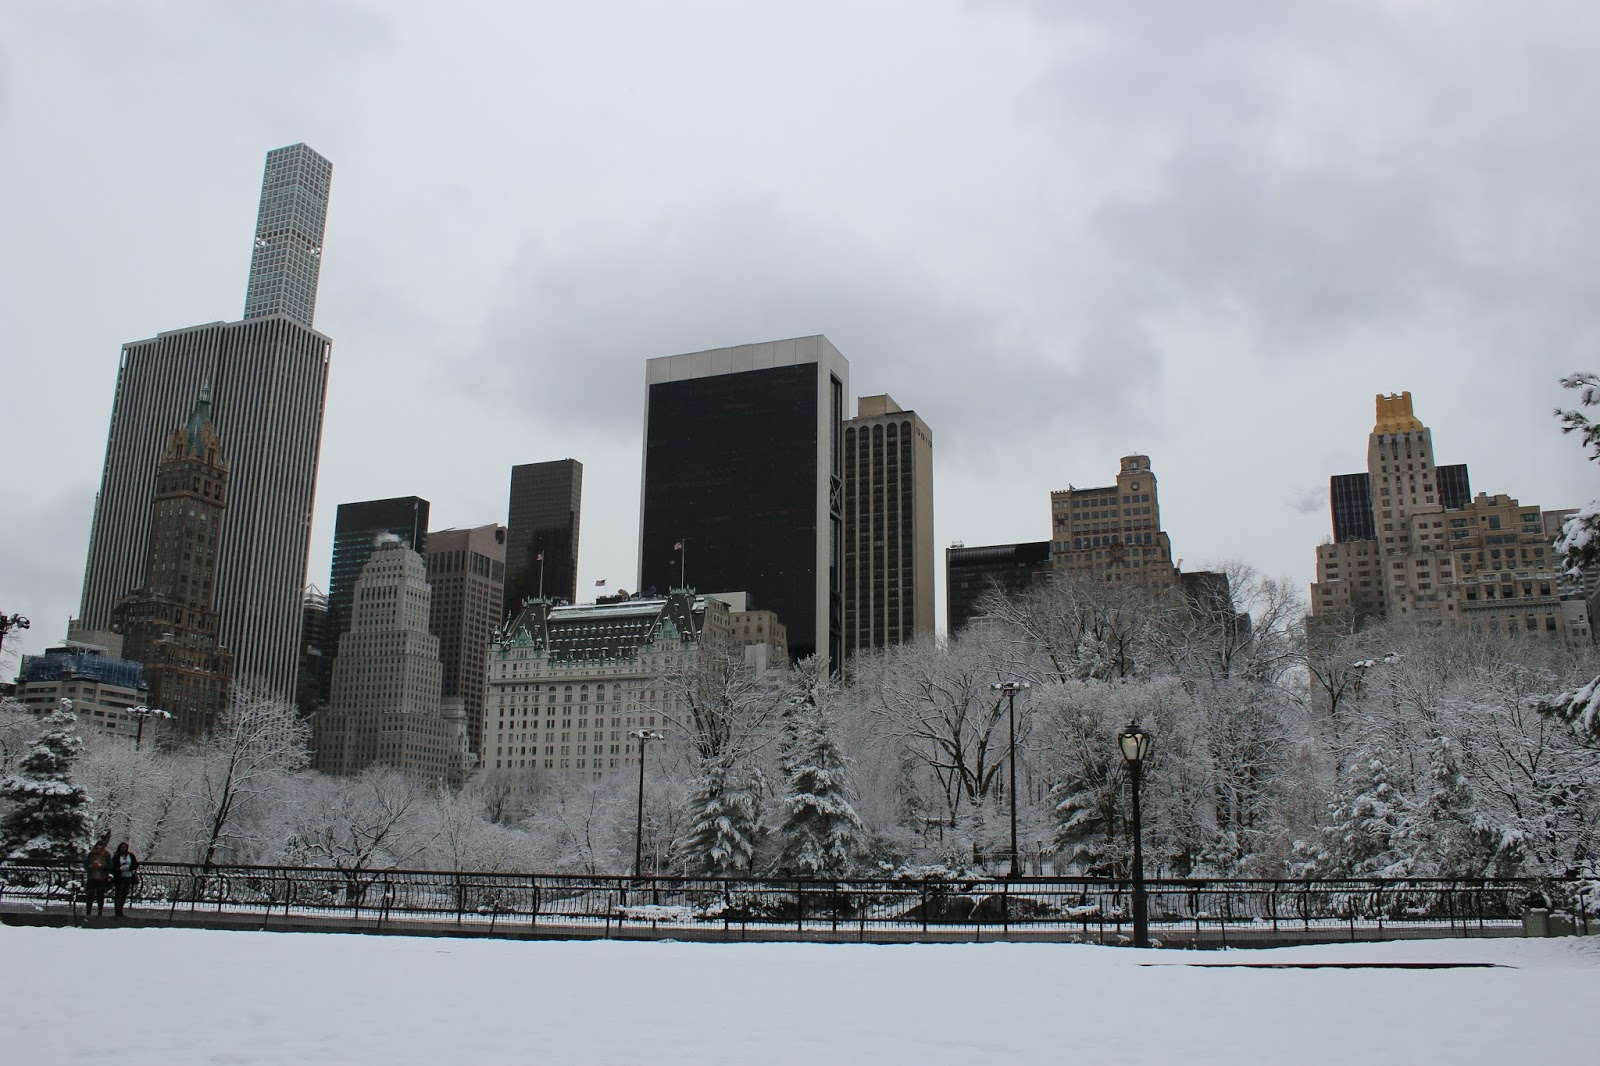 The Plaza Hotel from Central Park in the snow